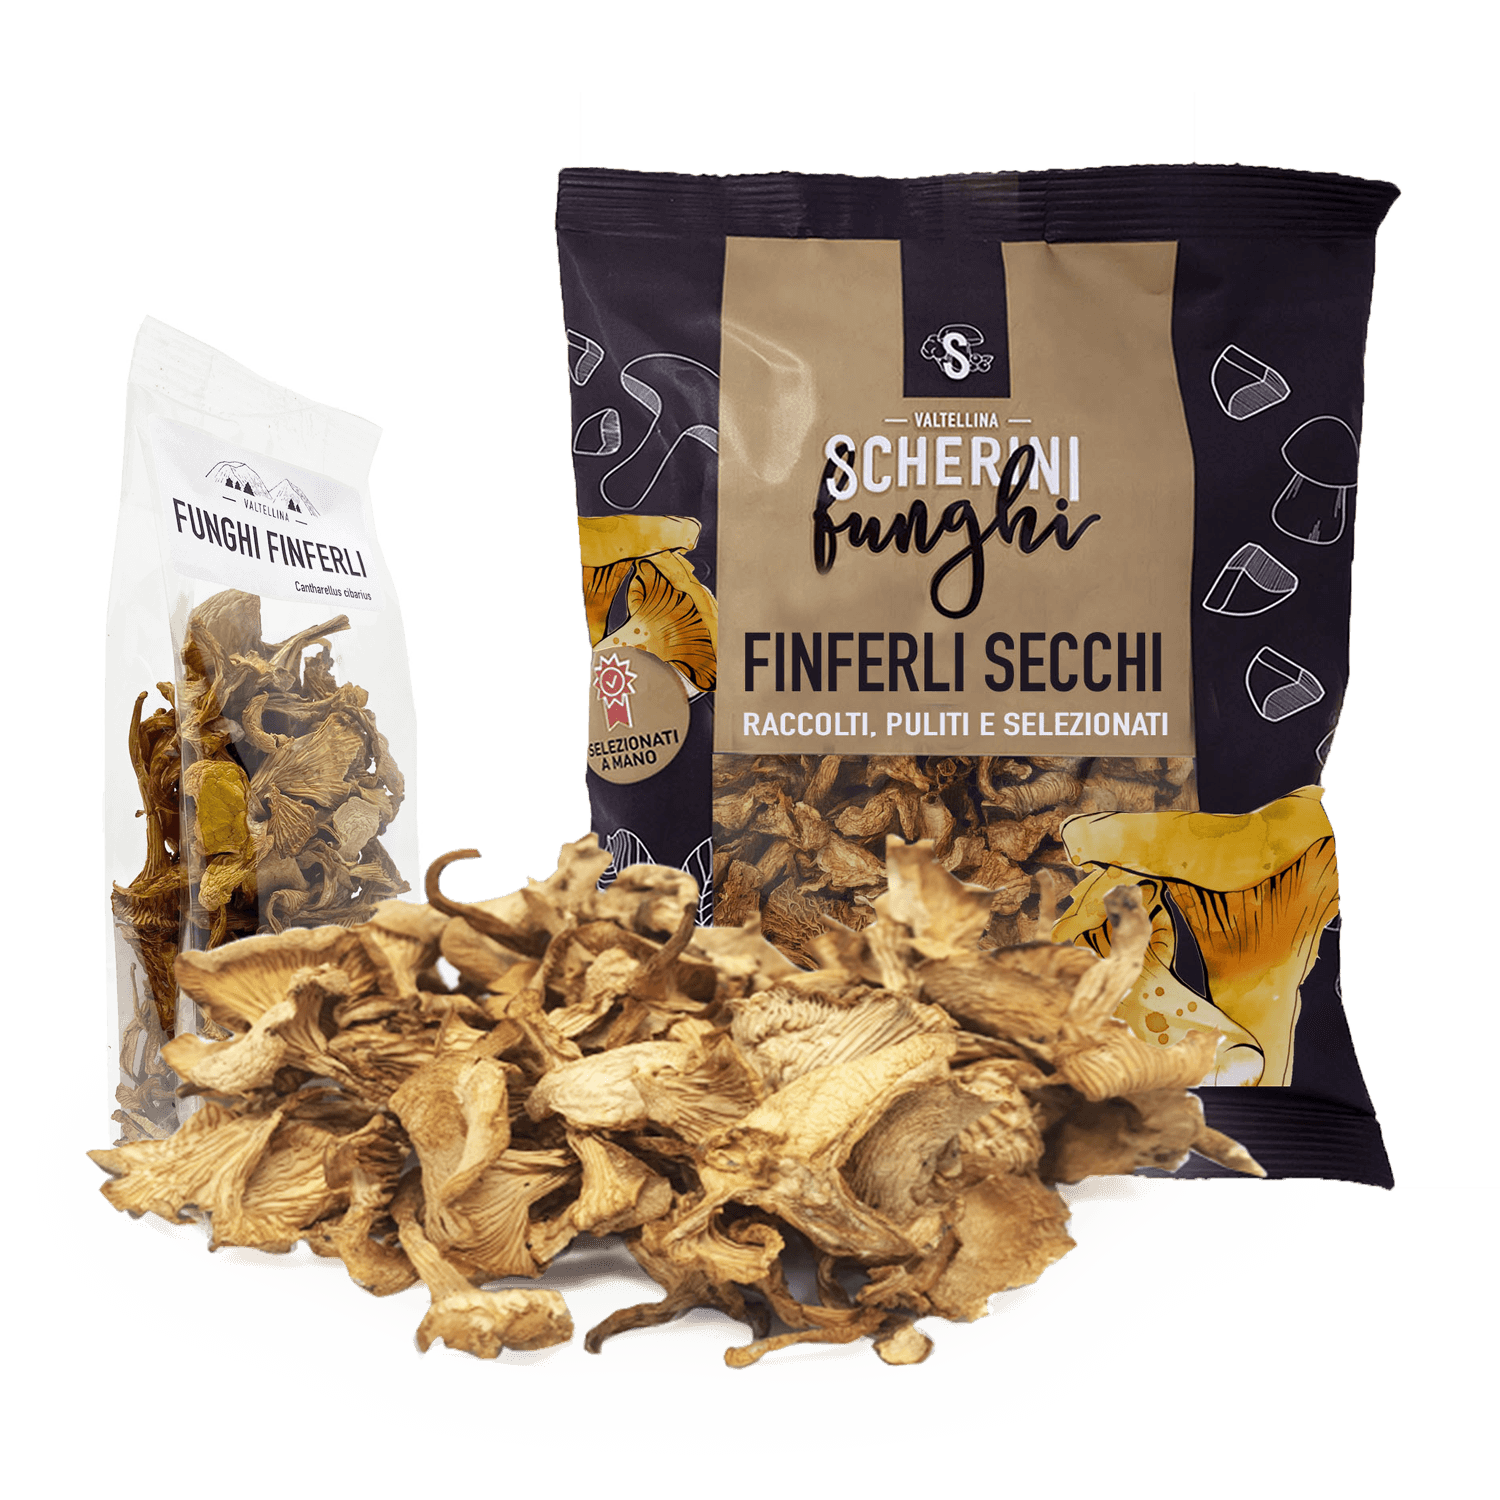 Scherini dried chanterelles